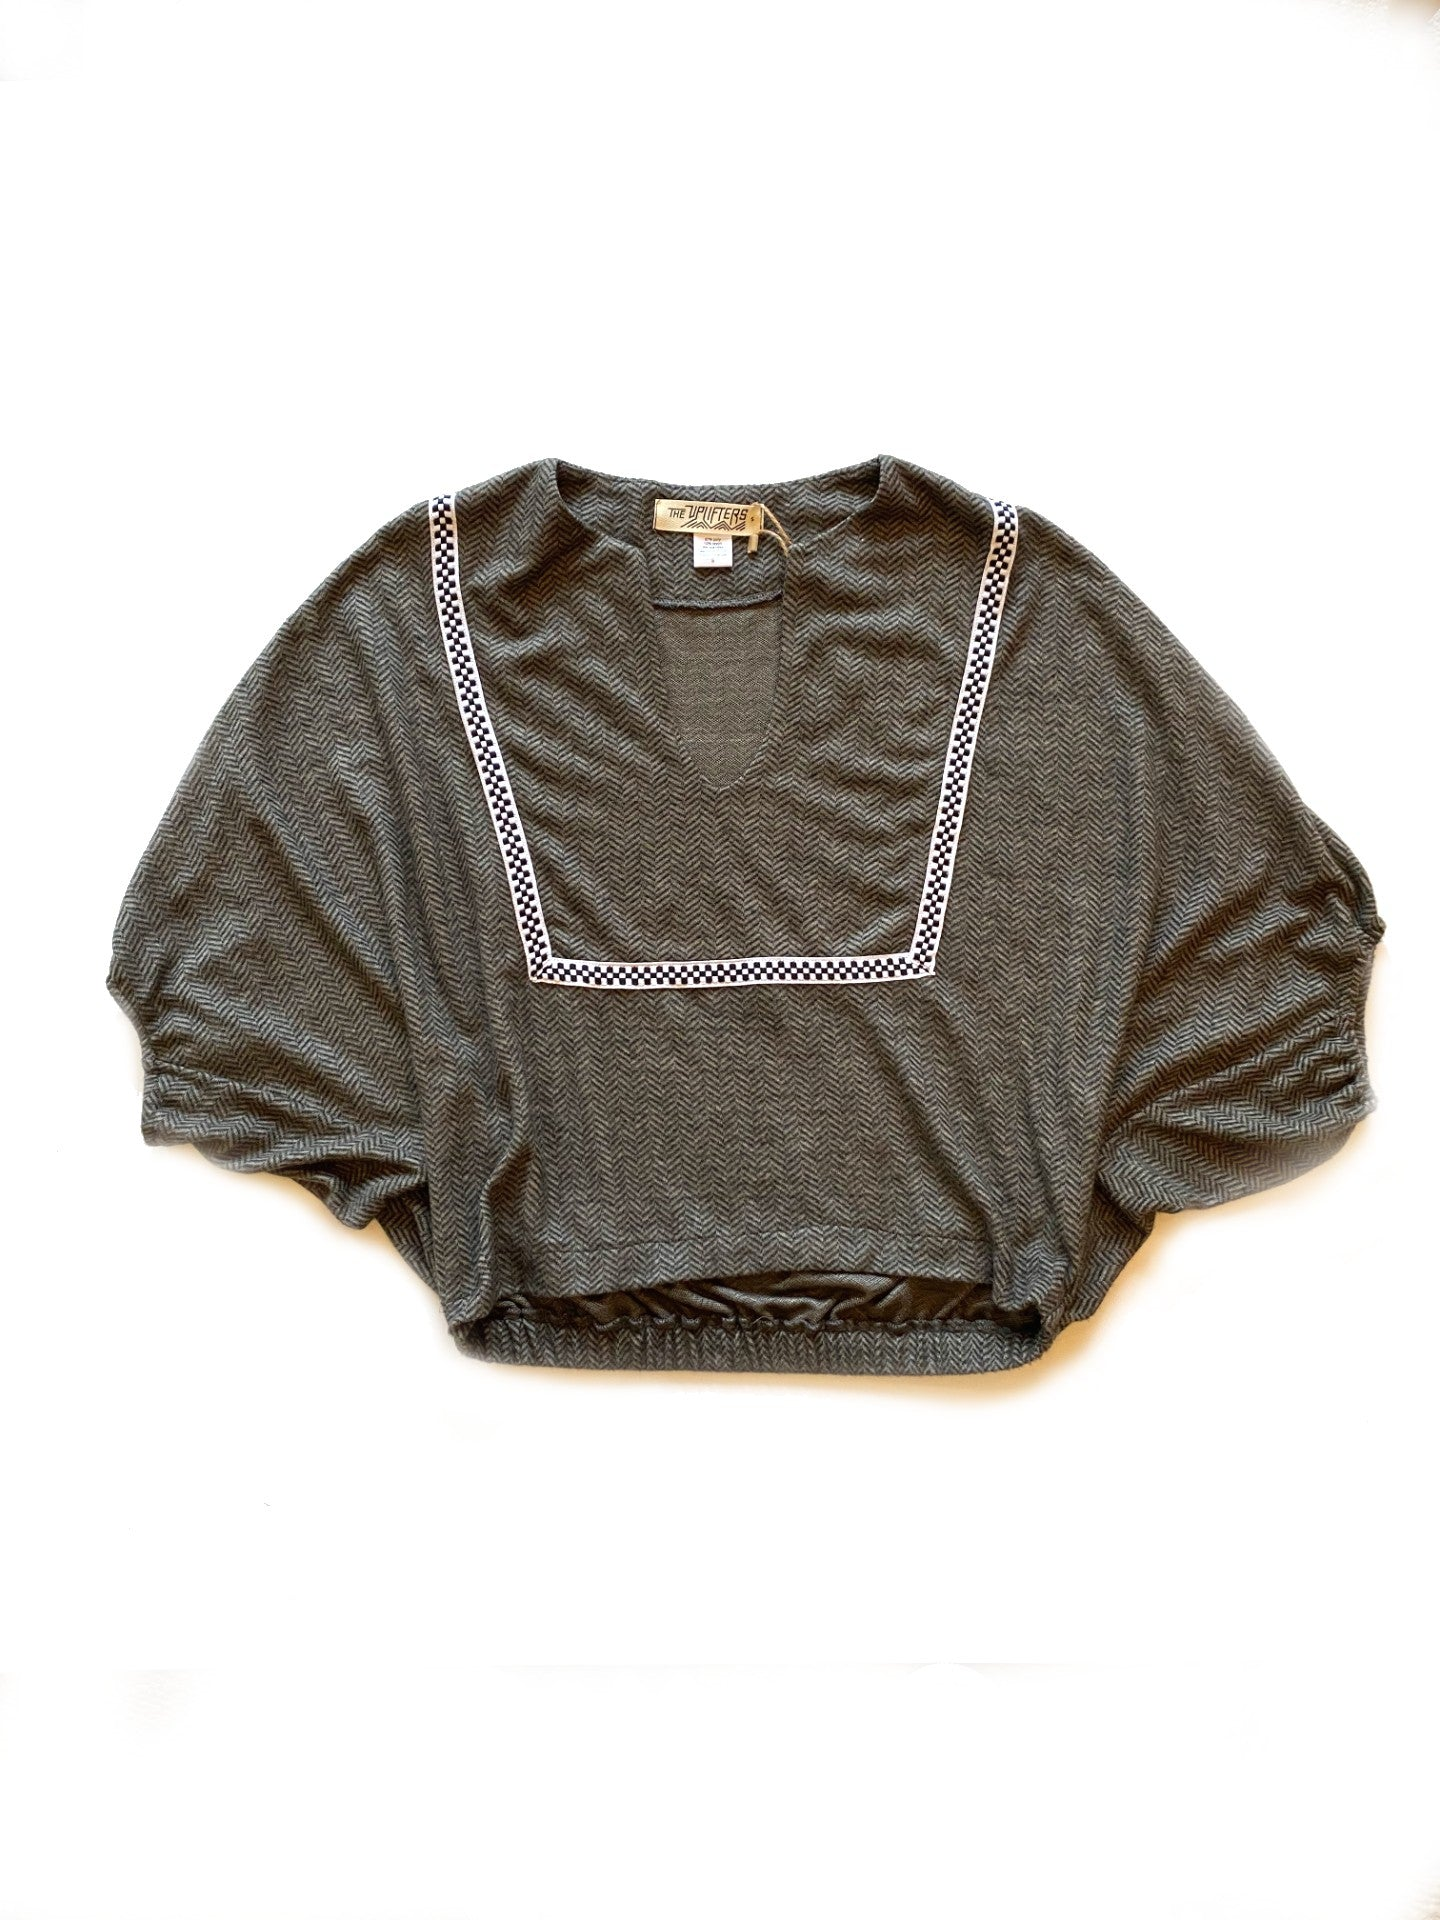 Herringbone Pullover Top,, The Uplifters- Woo